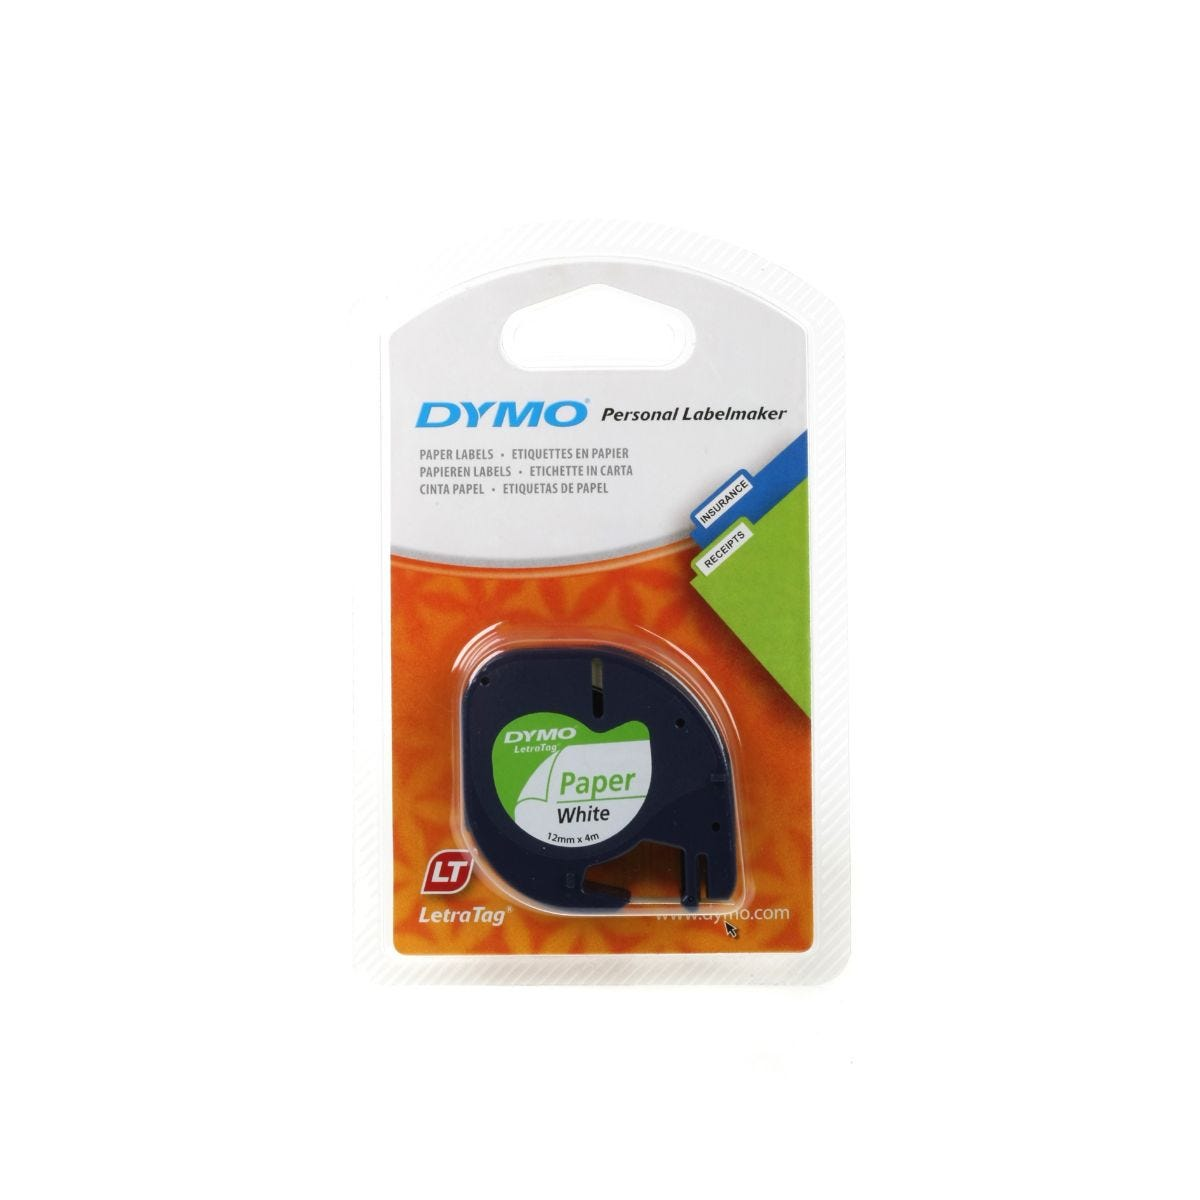 Dymo Letratag Tape 12mm x 4m Paper, White Paper